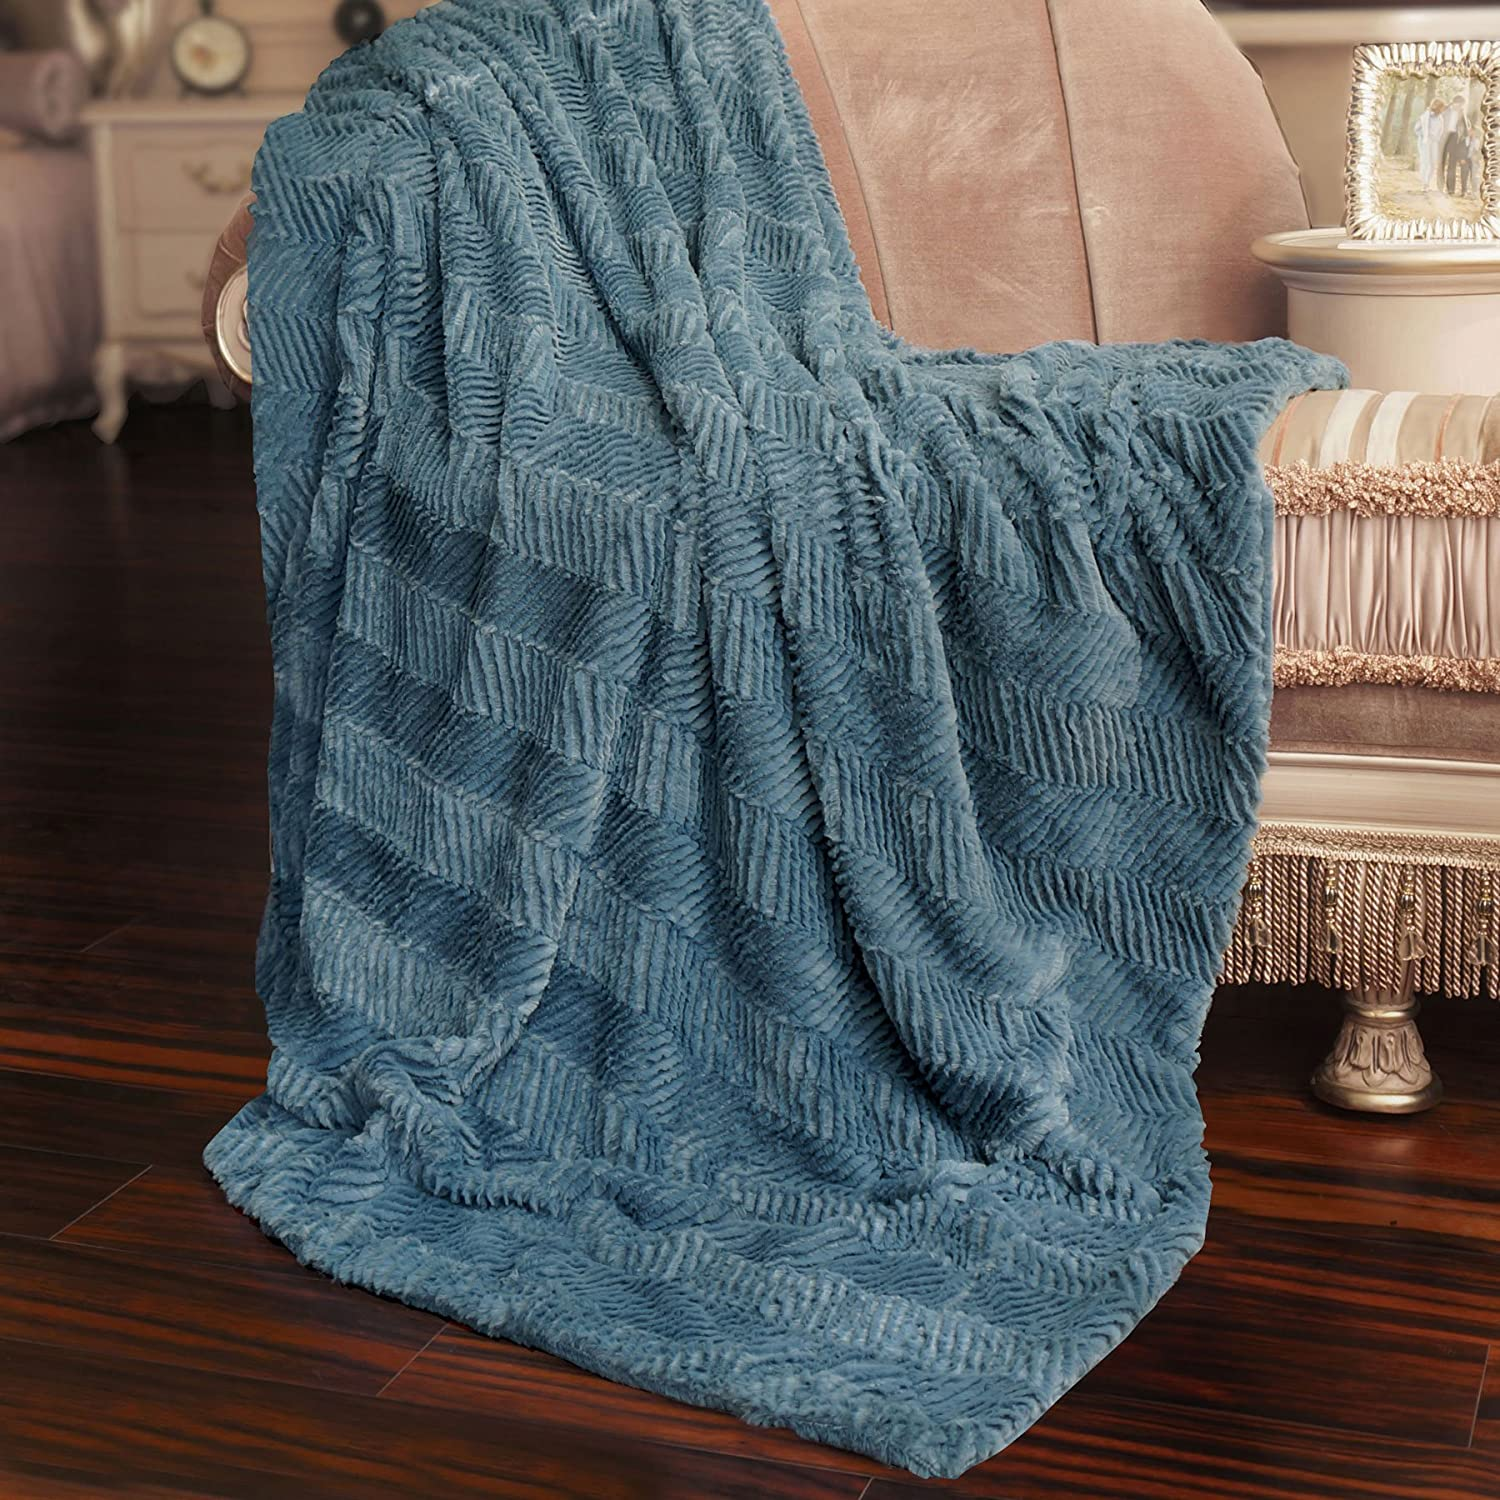 Home Soft Things Herringbone Brushed Throw with Faux Fur Sherpa Backing, 50